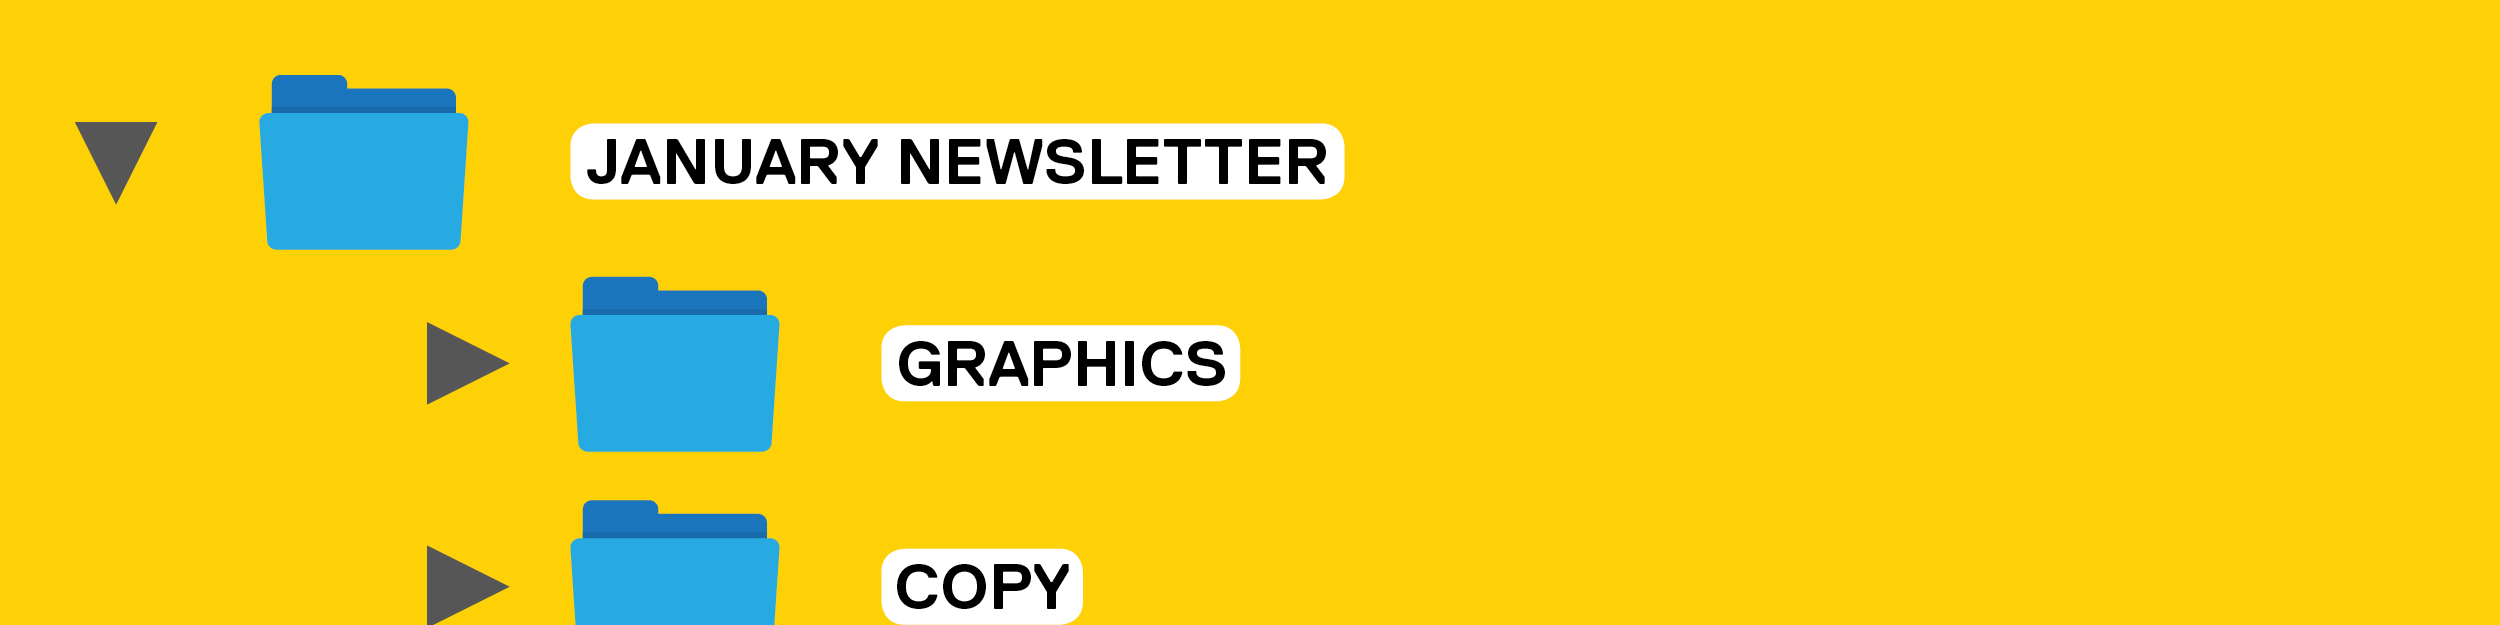 illustration of a folder labeled January Newsletter with two subfolders labeled Graphics and Copy